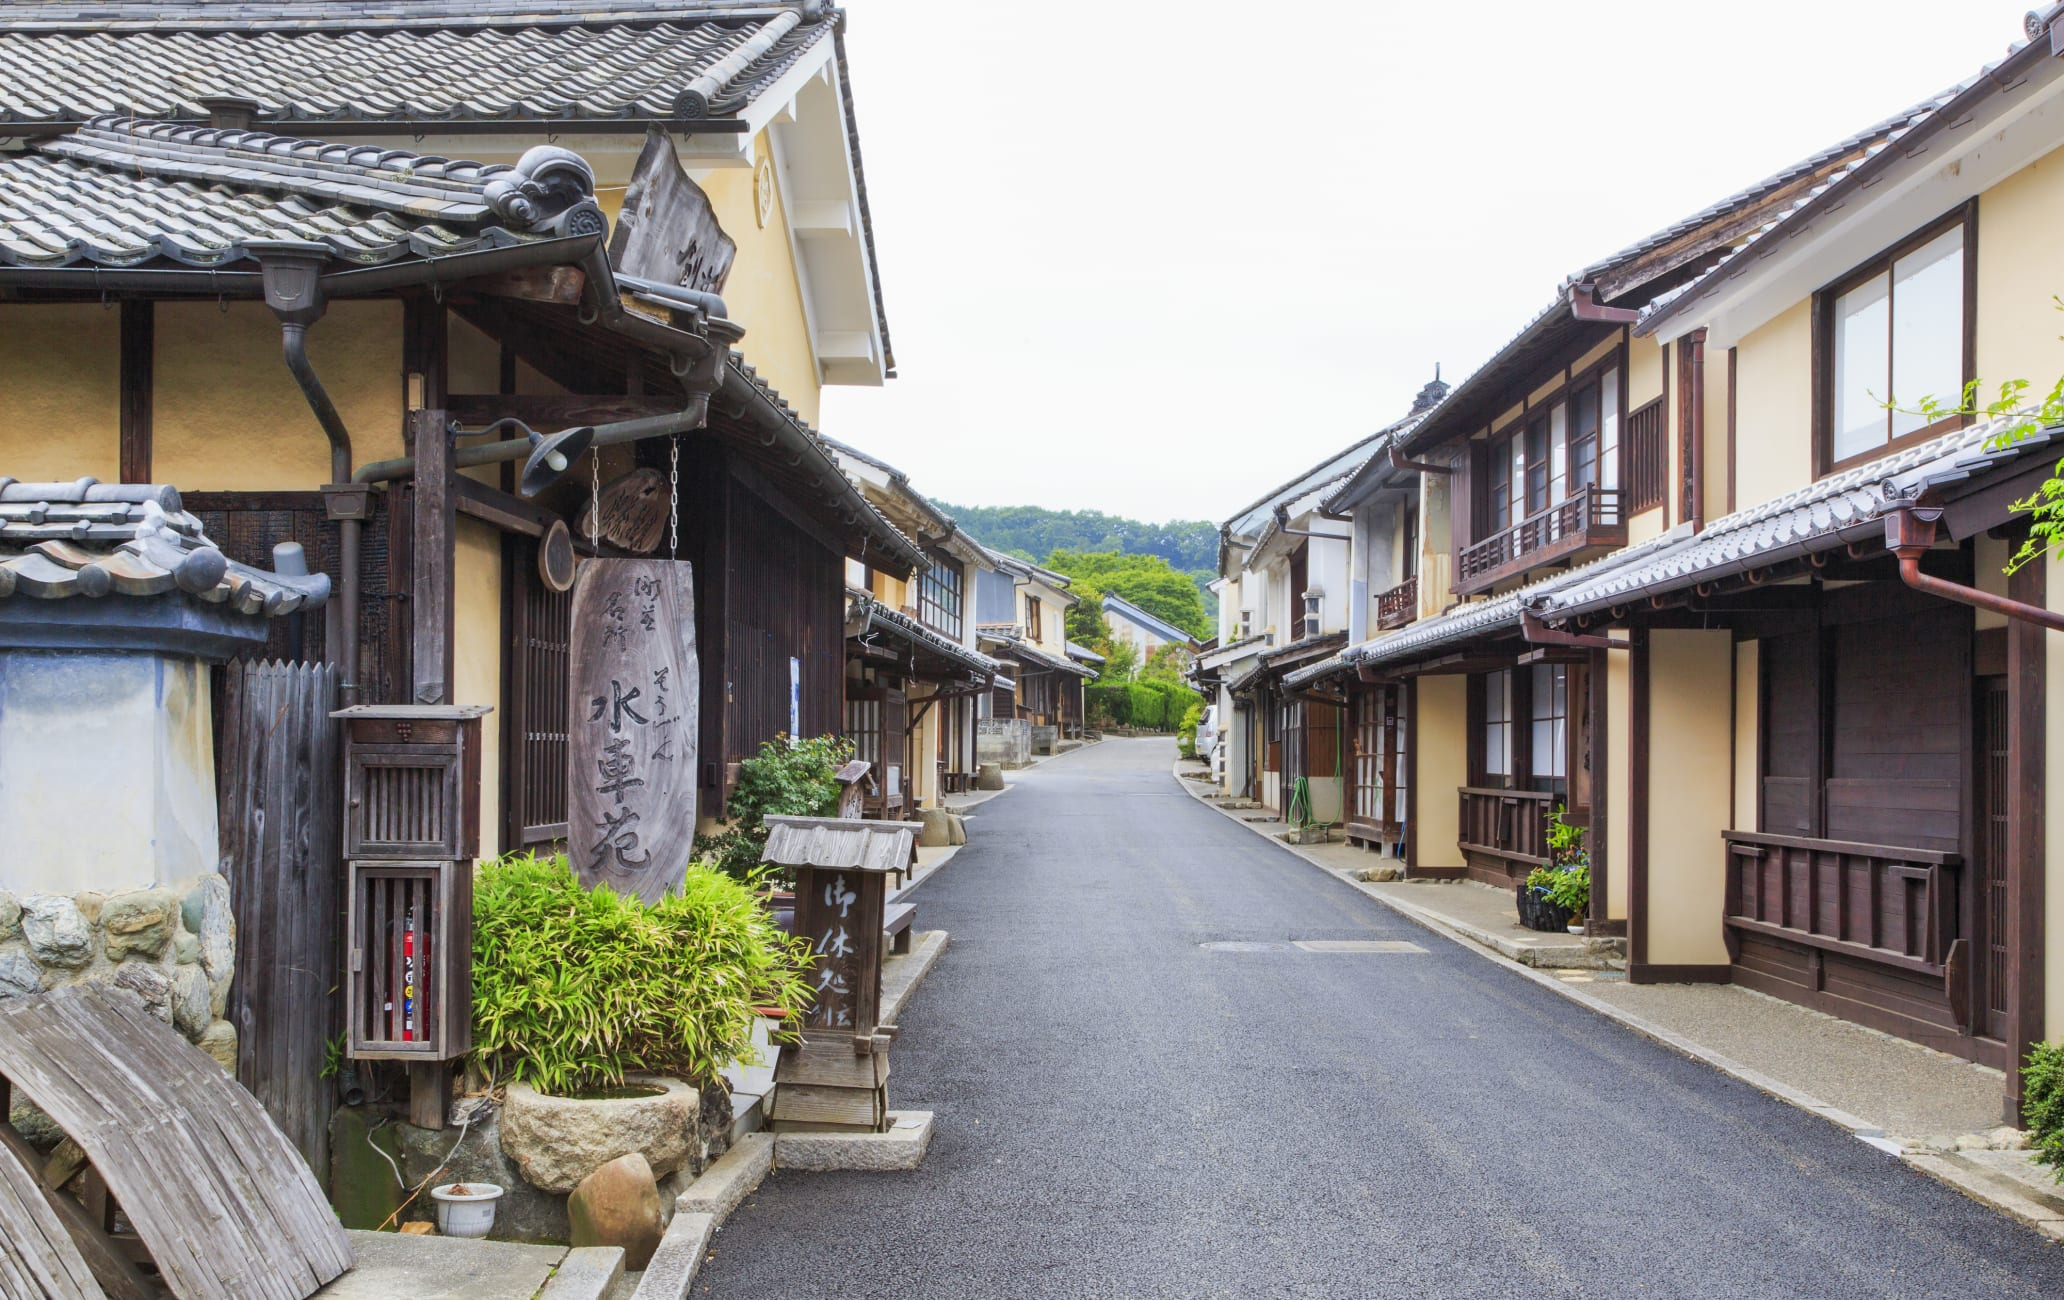 Youkaichi Gokoku Streetscape Preservation Center